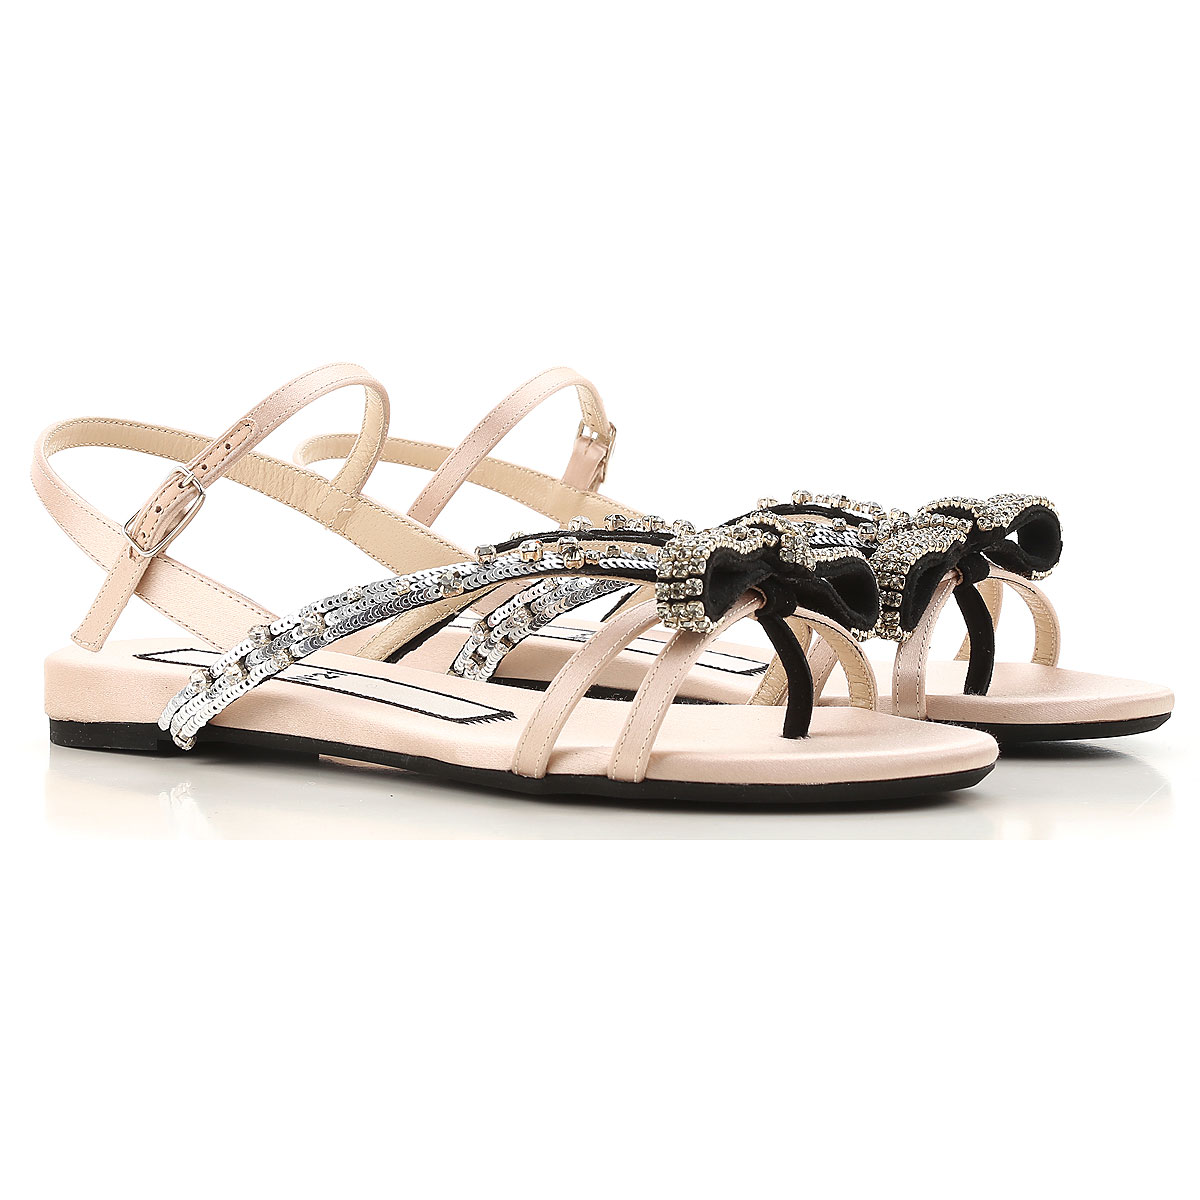 NO 21 Sandals for Women On Sale in Outlet, Powder, satin, 2019, 6 7 8